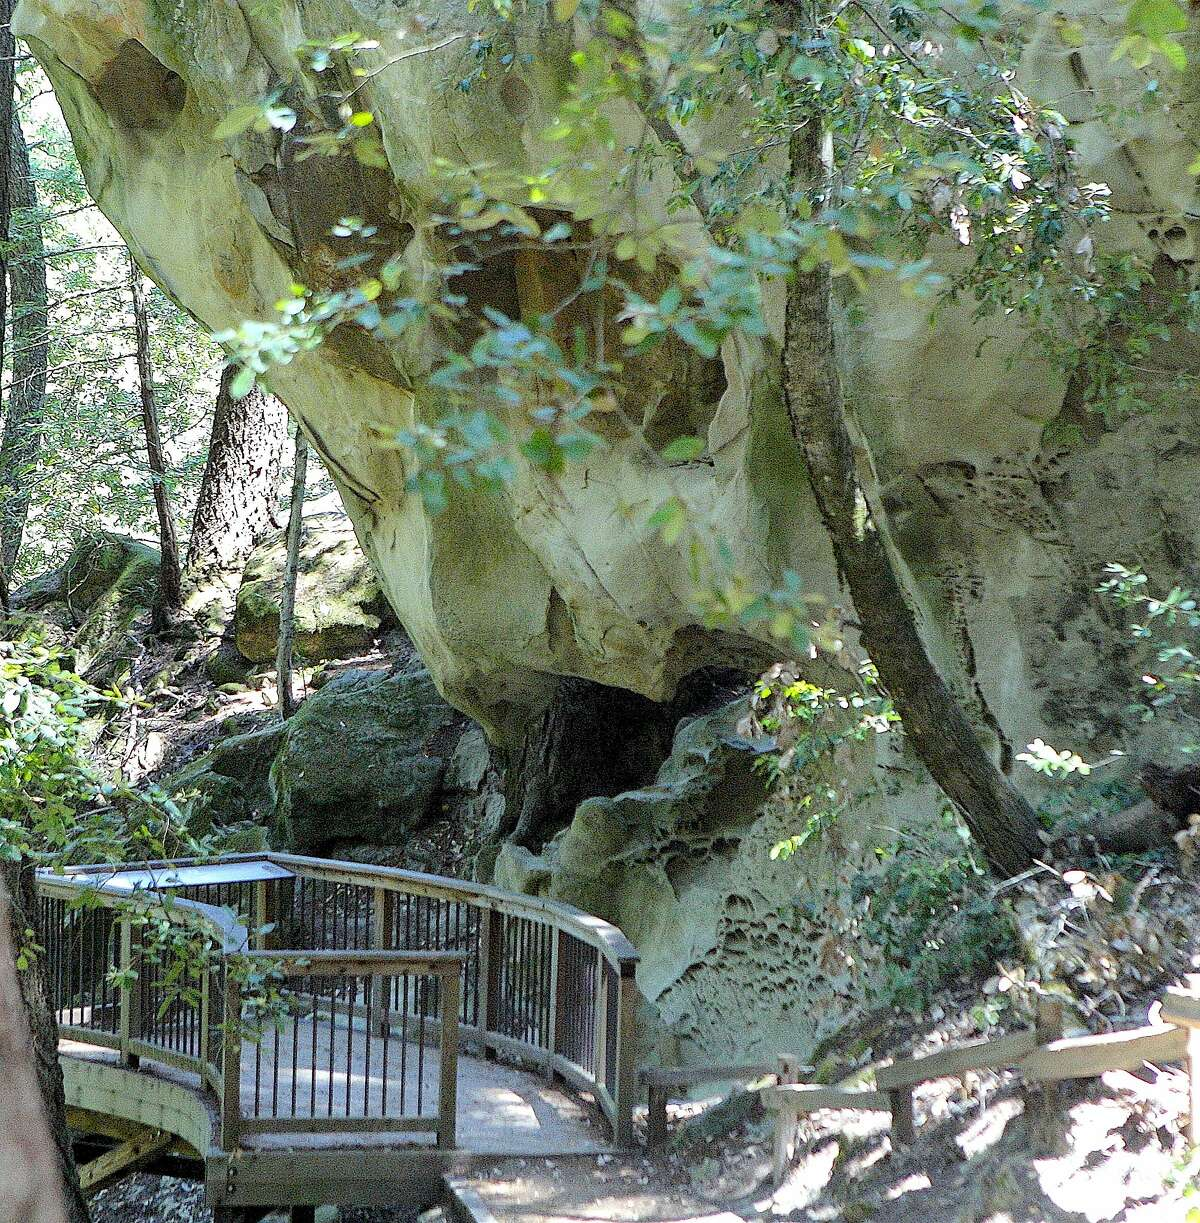 A new trail in El Corte de Madera Creek Open Space Preserve leads to the cut-off spur to The Tafoni, a sandstone monolith with viewing deck